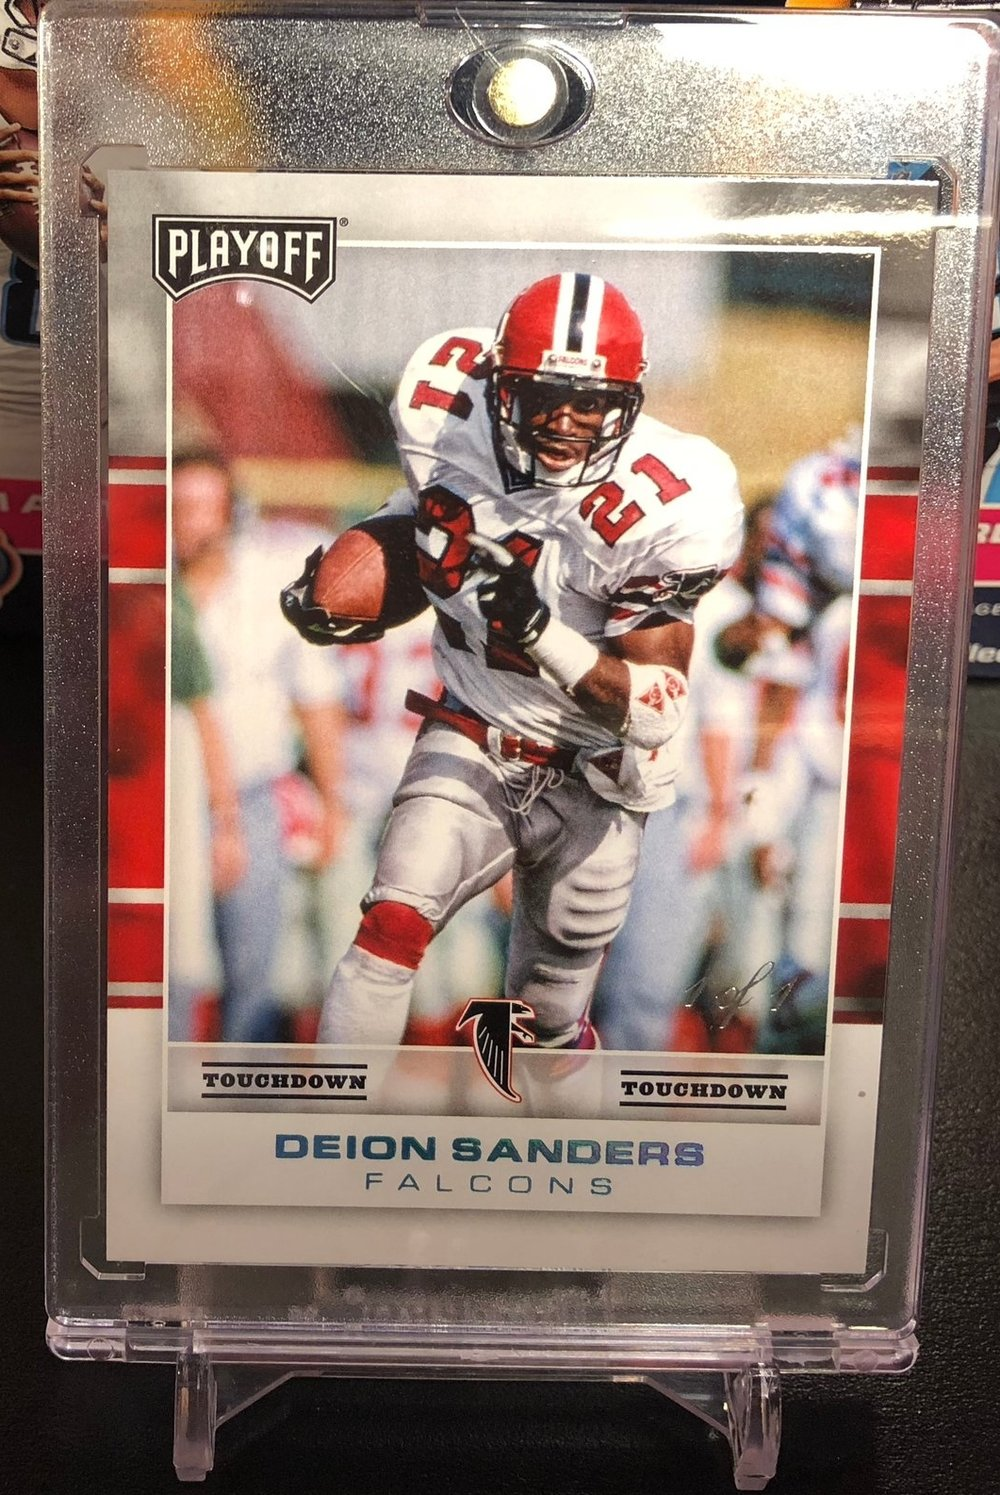 2017 Panini Playoff Deion Sanders Touchdown 1/1